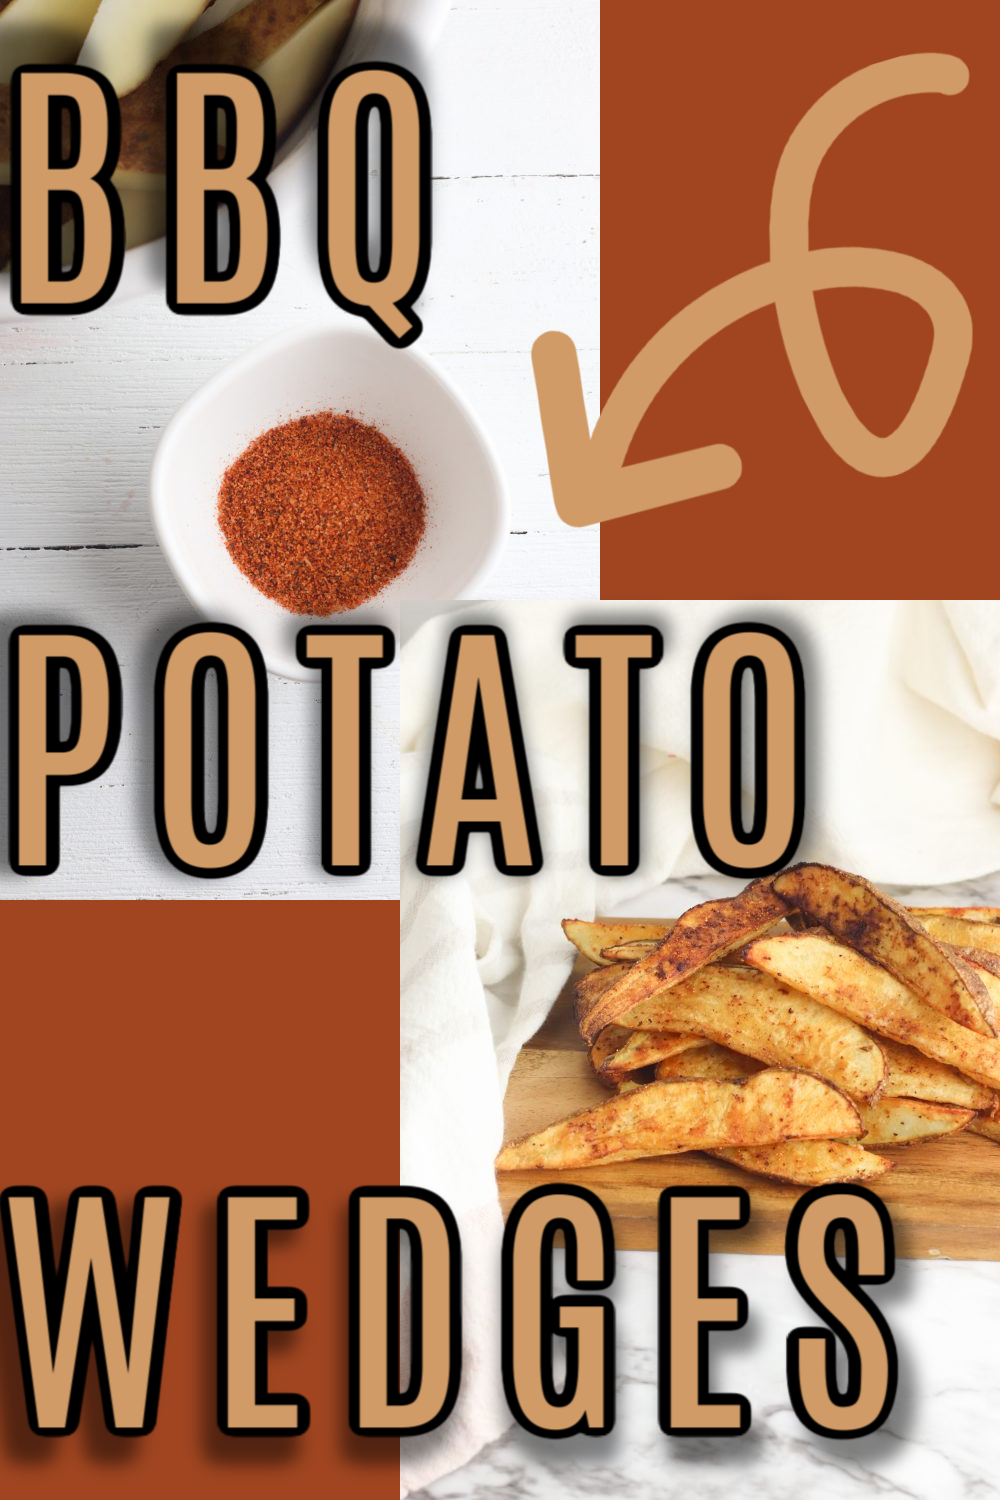 Perfectly seasoned BBQ Potato Wedges turn regular potatoes into something special. With a crispy outside and creamy inside, these easy-to-make Barbecued Wedges are a fan favorite. via @simplysidedishes89